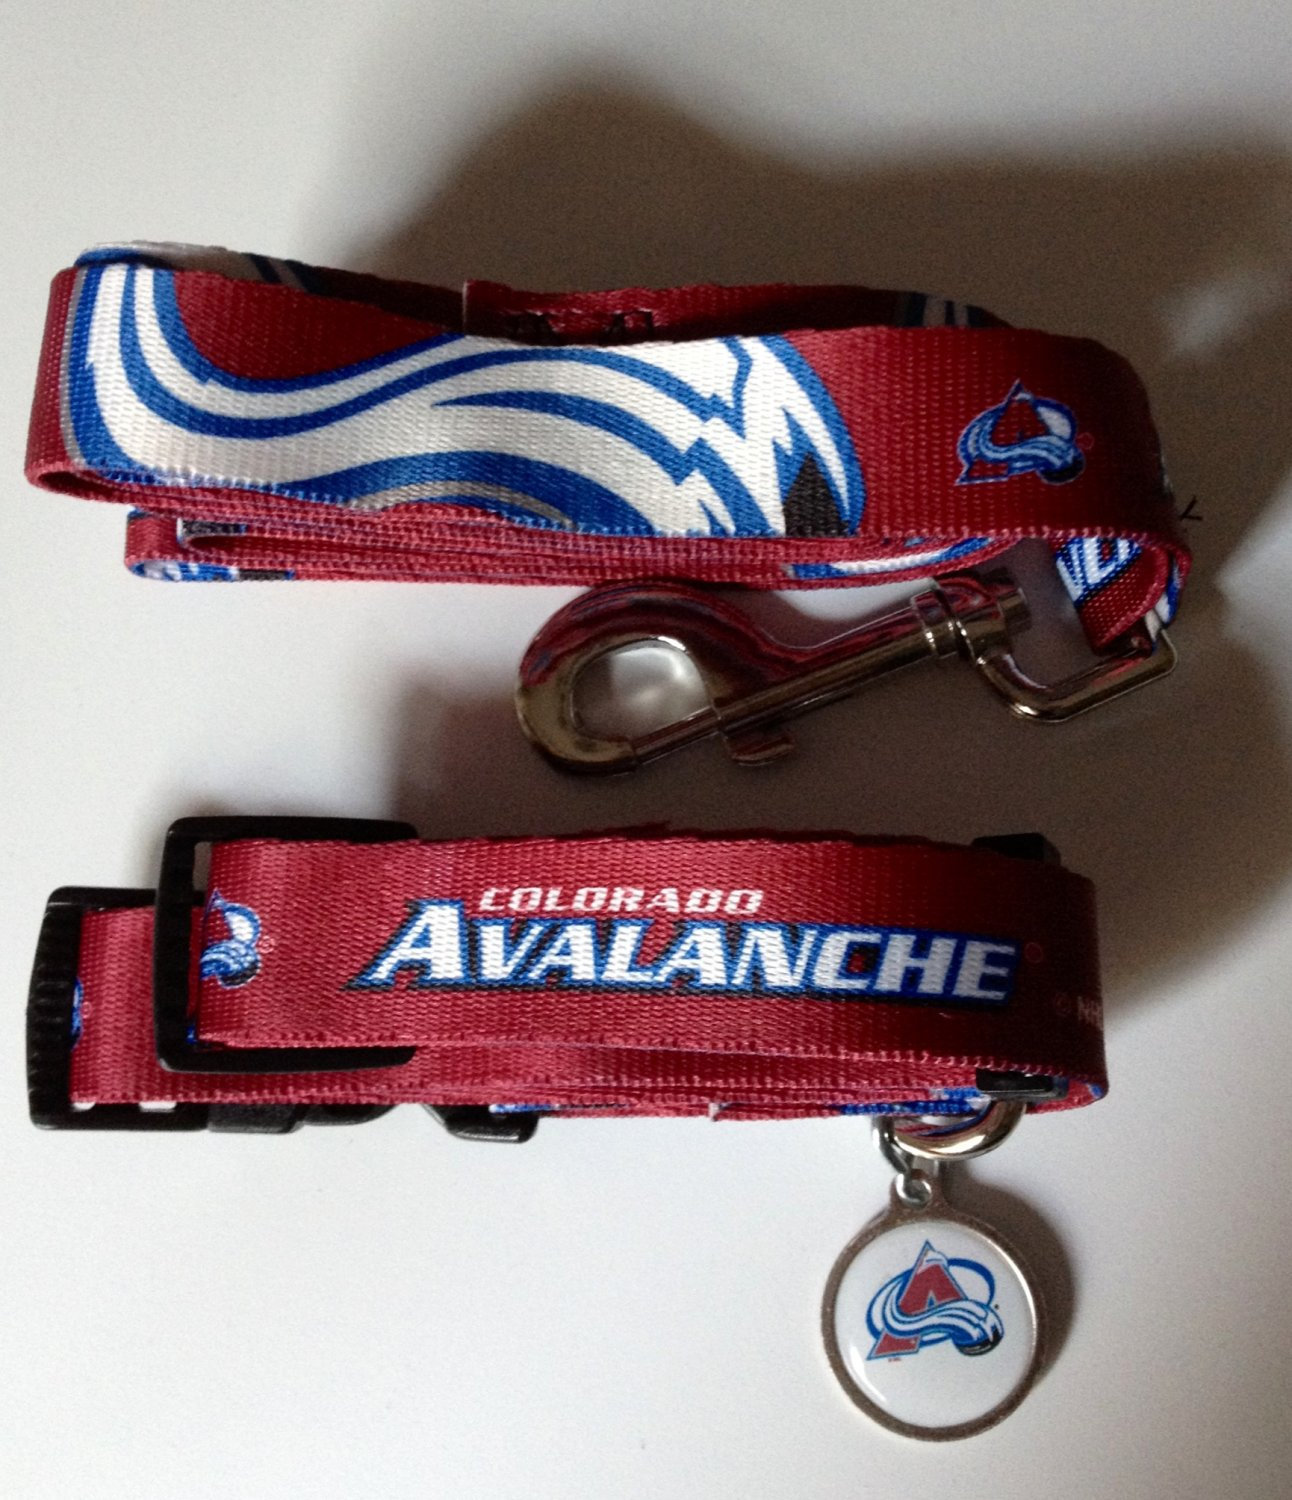 Colorado Avalanche Pet Dog Leash Set Collar ID Tag Gift Size Small